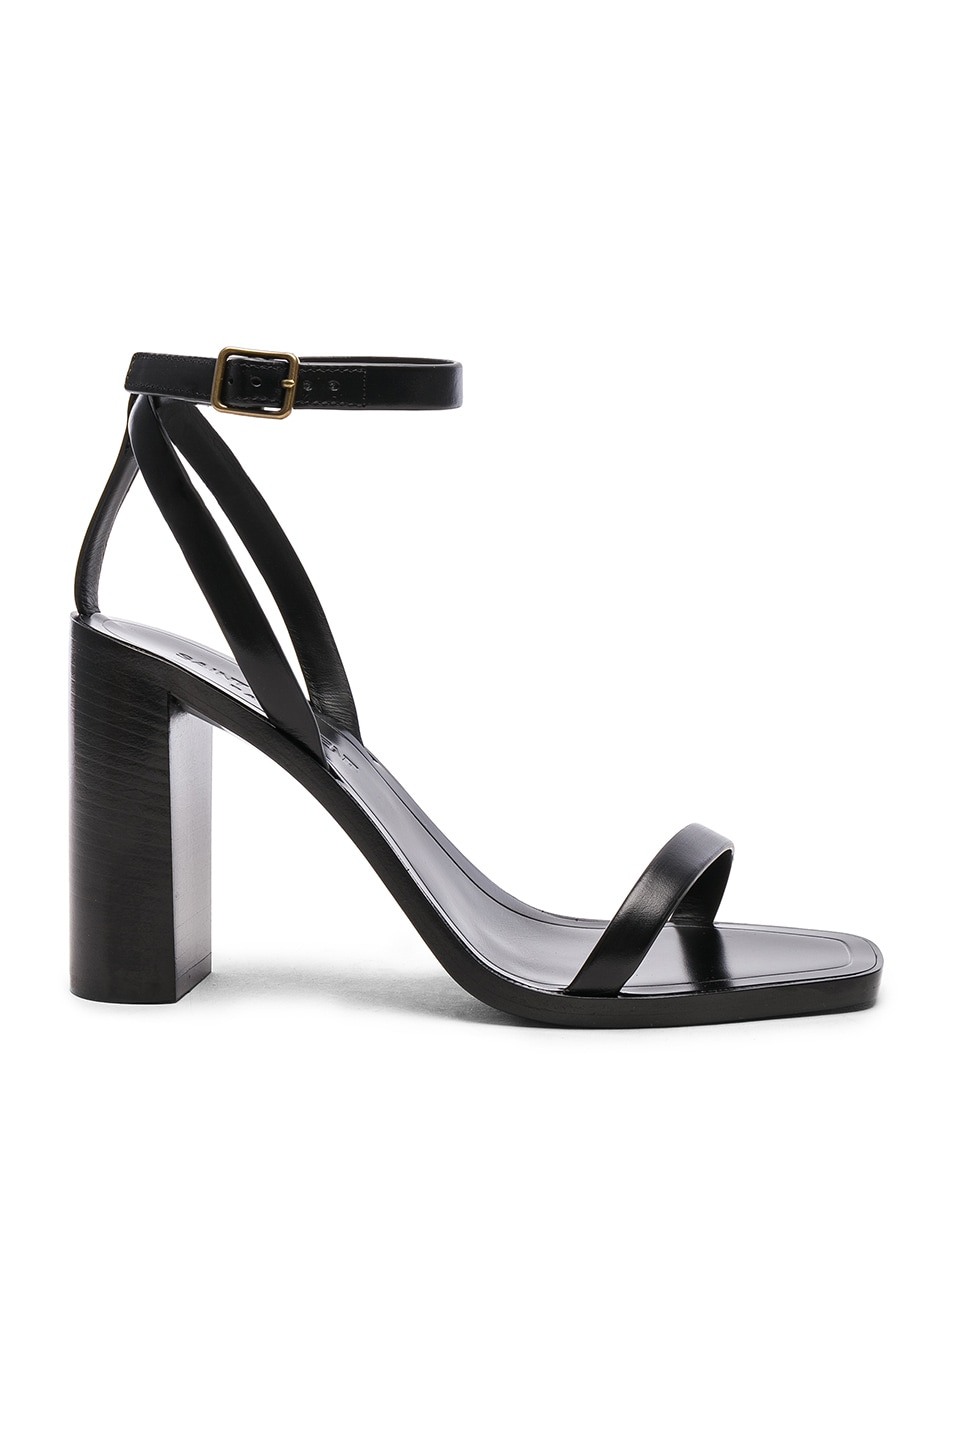 Image 1 of Saint Laurent Leather Loulou Ankle Strap Sandals in Black